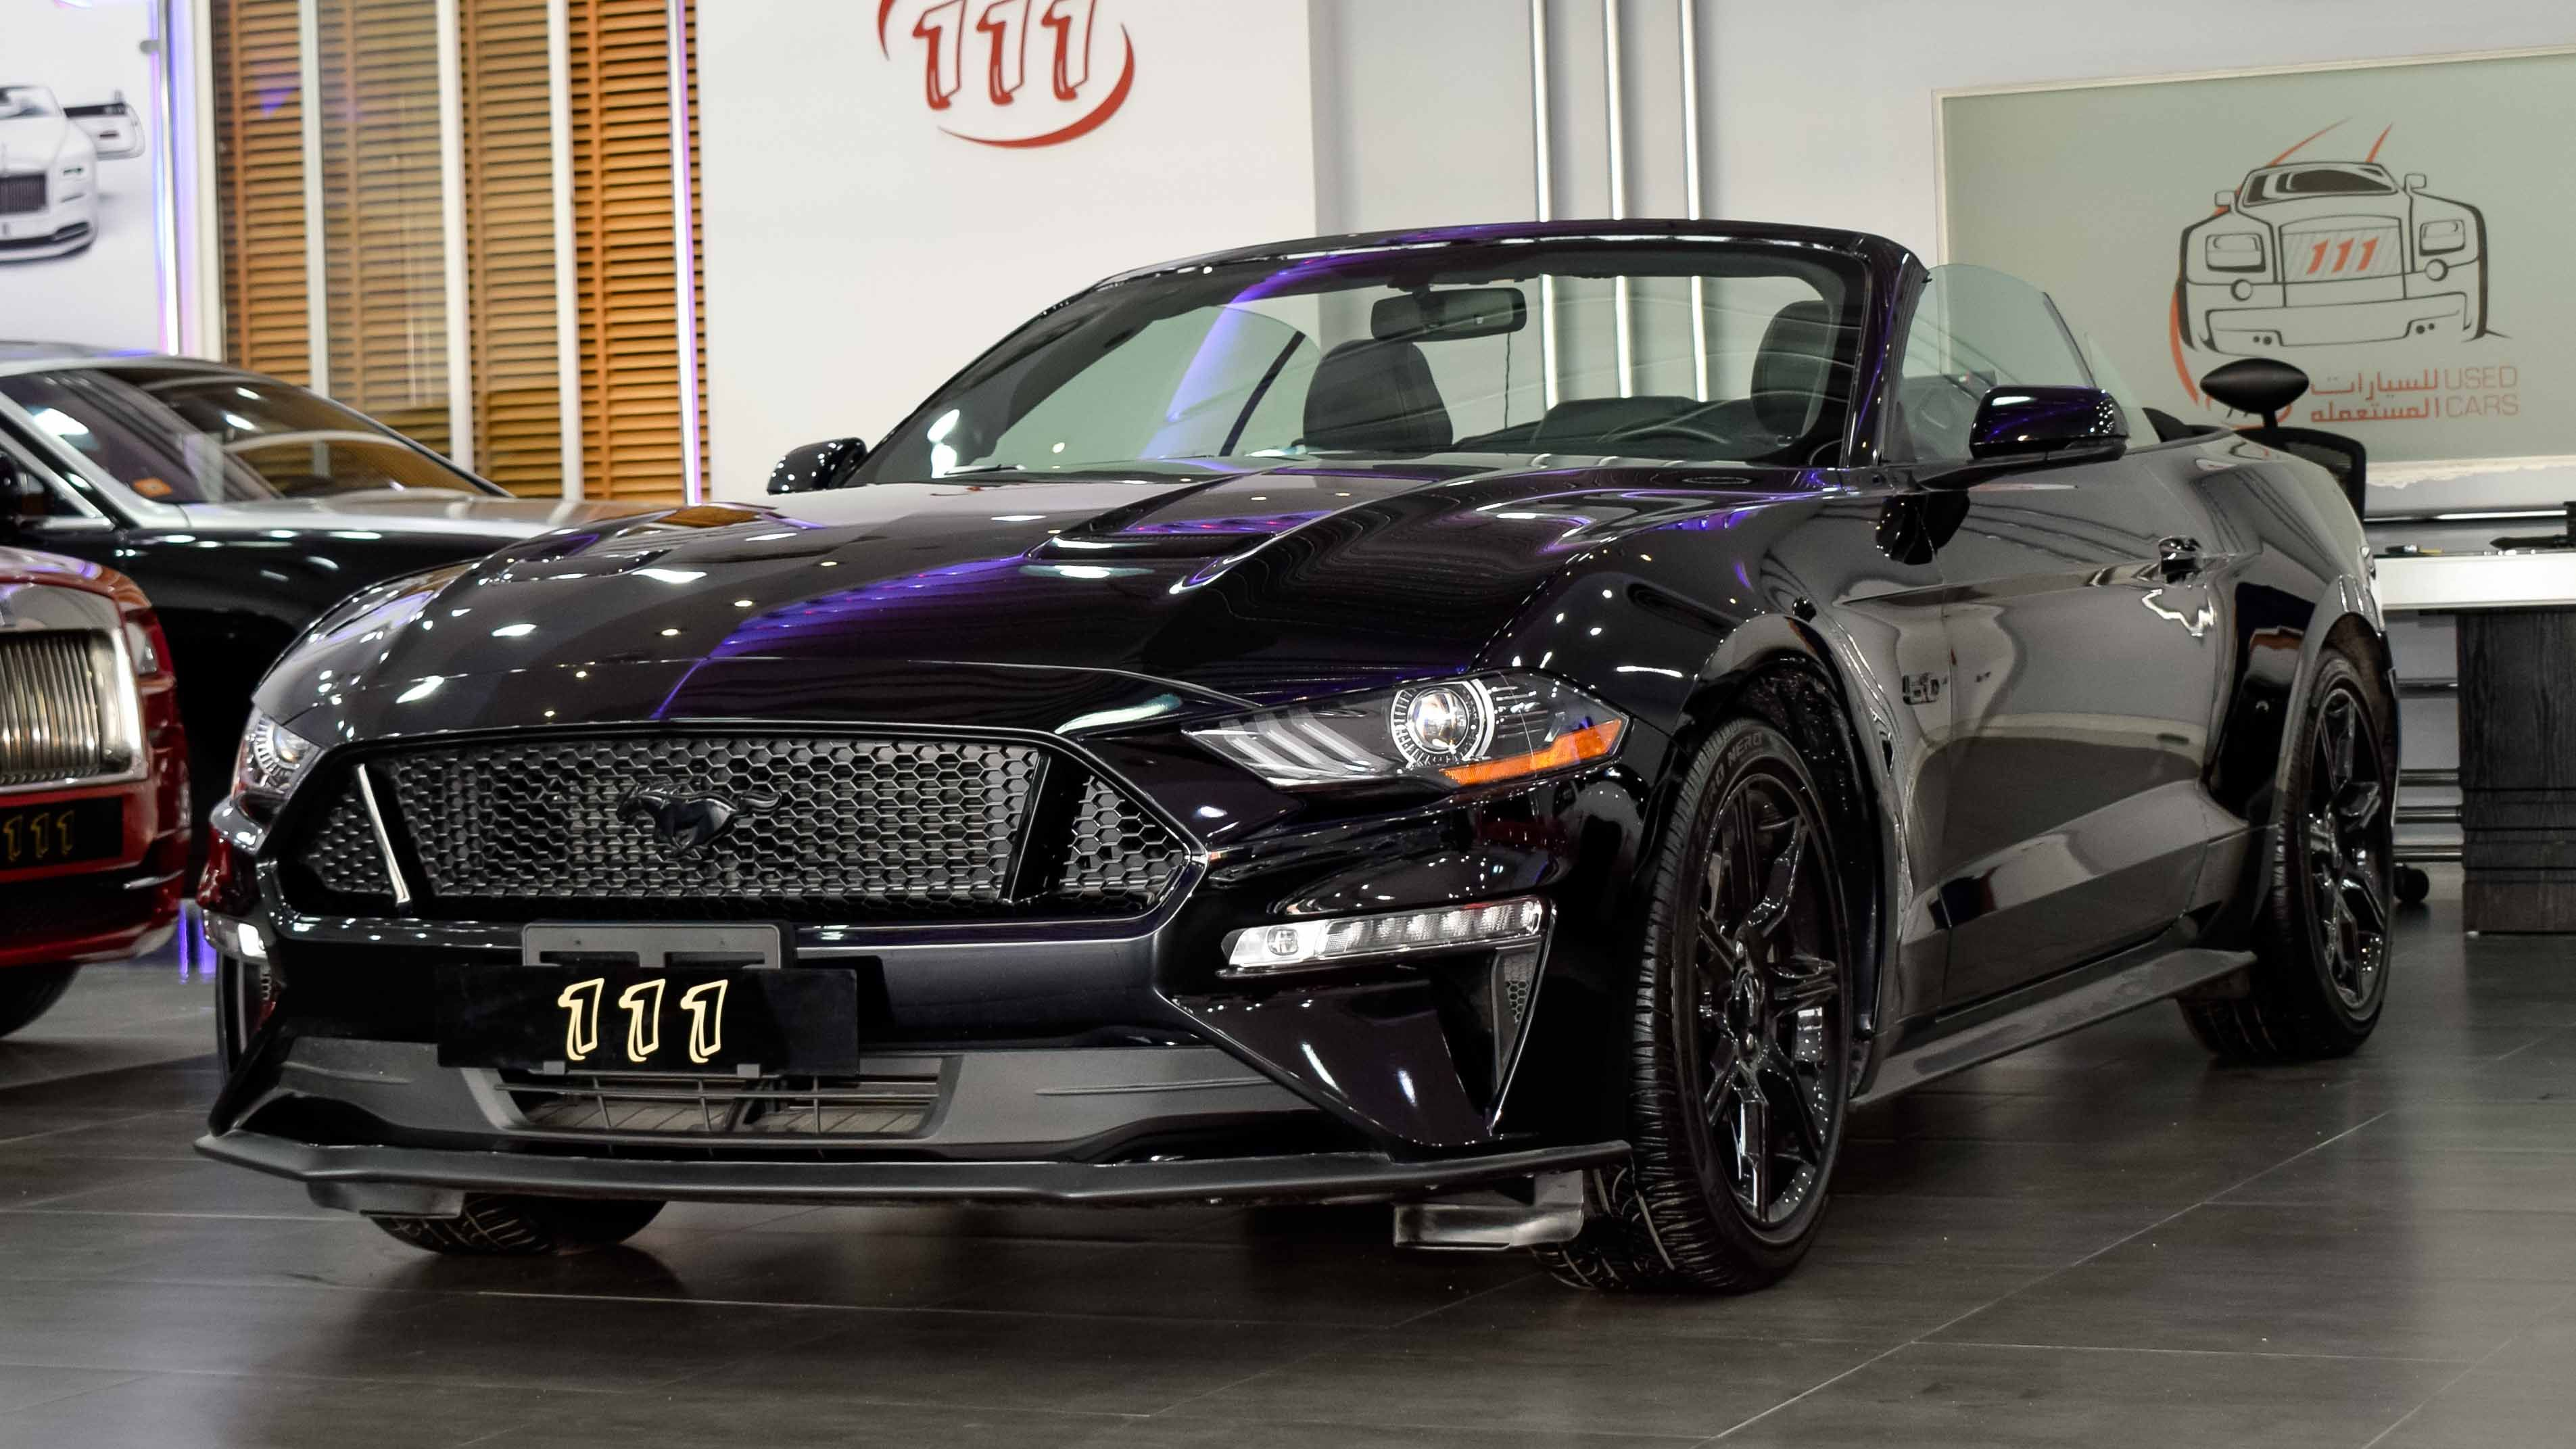 Model Ford Mustang 5 0 Gt V8 Year 2018 Km 14 600 Price Uae Dirham 145 000 Aed Call 00971 50 971 6111 Ford Mustang Mustang Used Cars